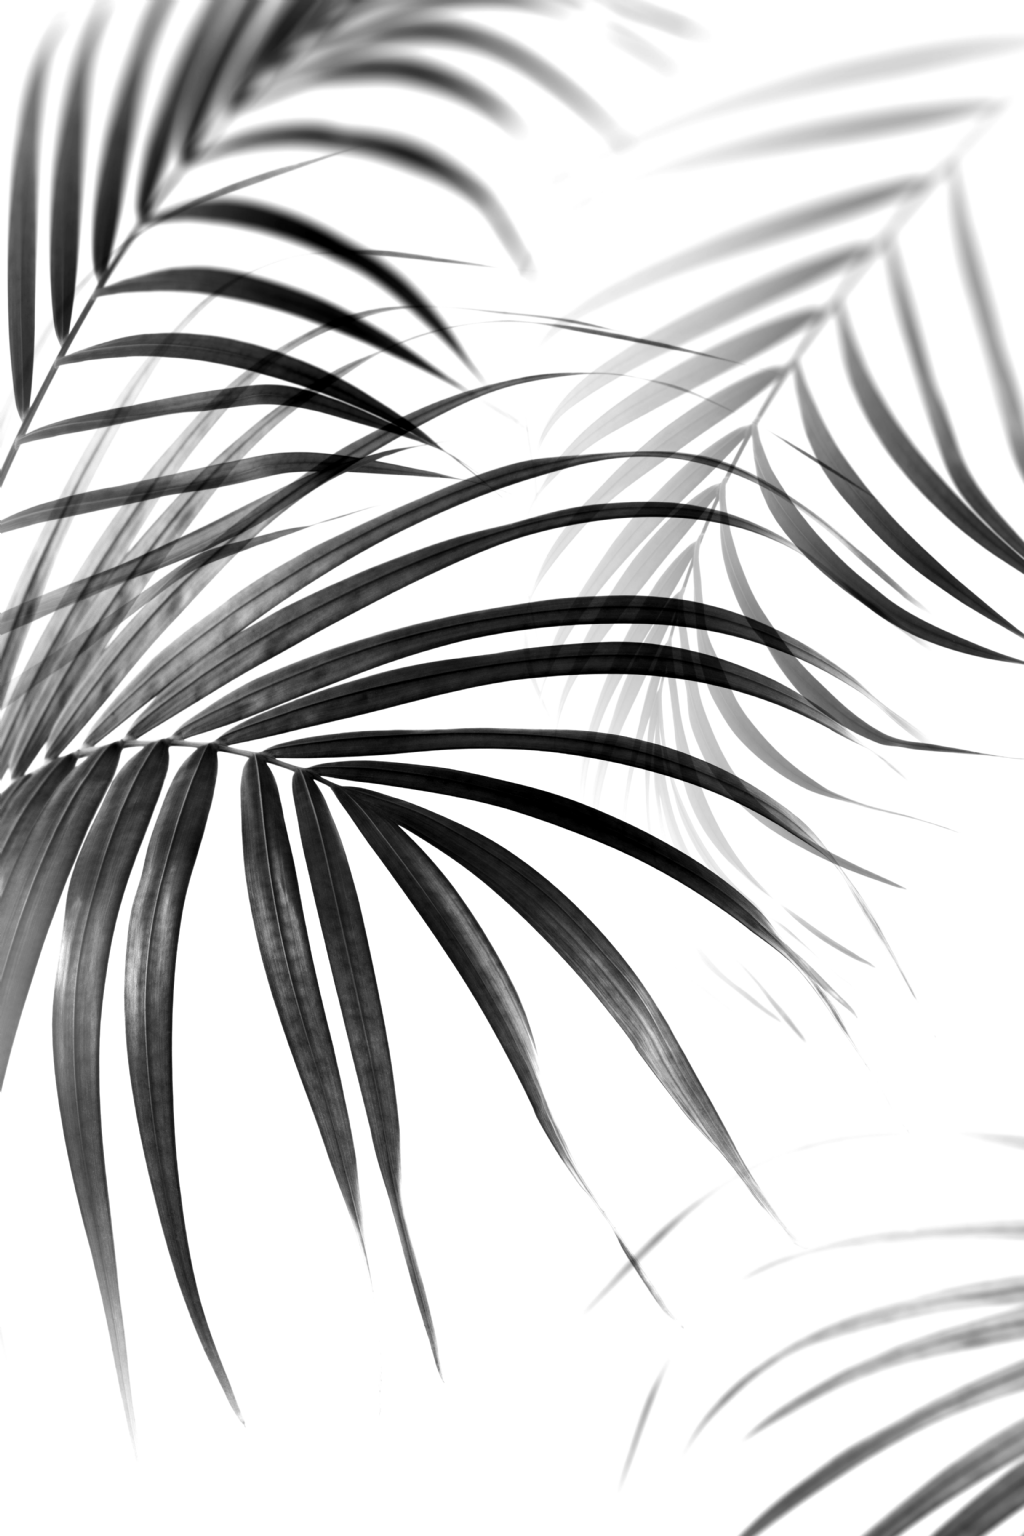 Pin By Tiarabayer On Sunset Wallpaper Black And White Photo Wall Succulents Wallpaper Black And White Art Drawing